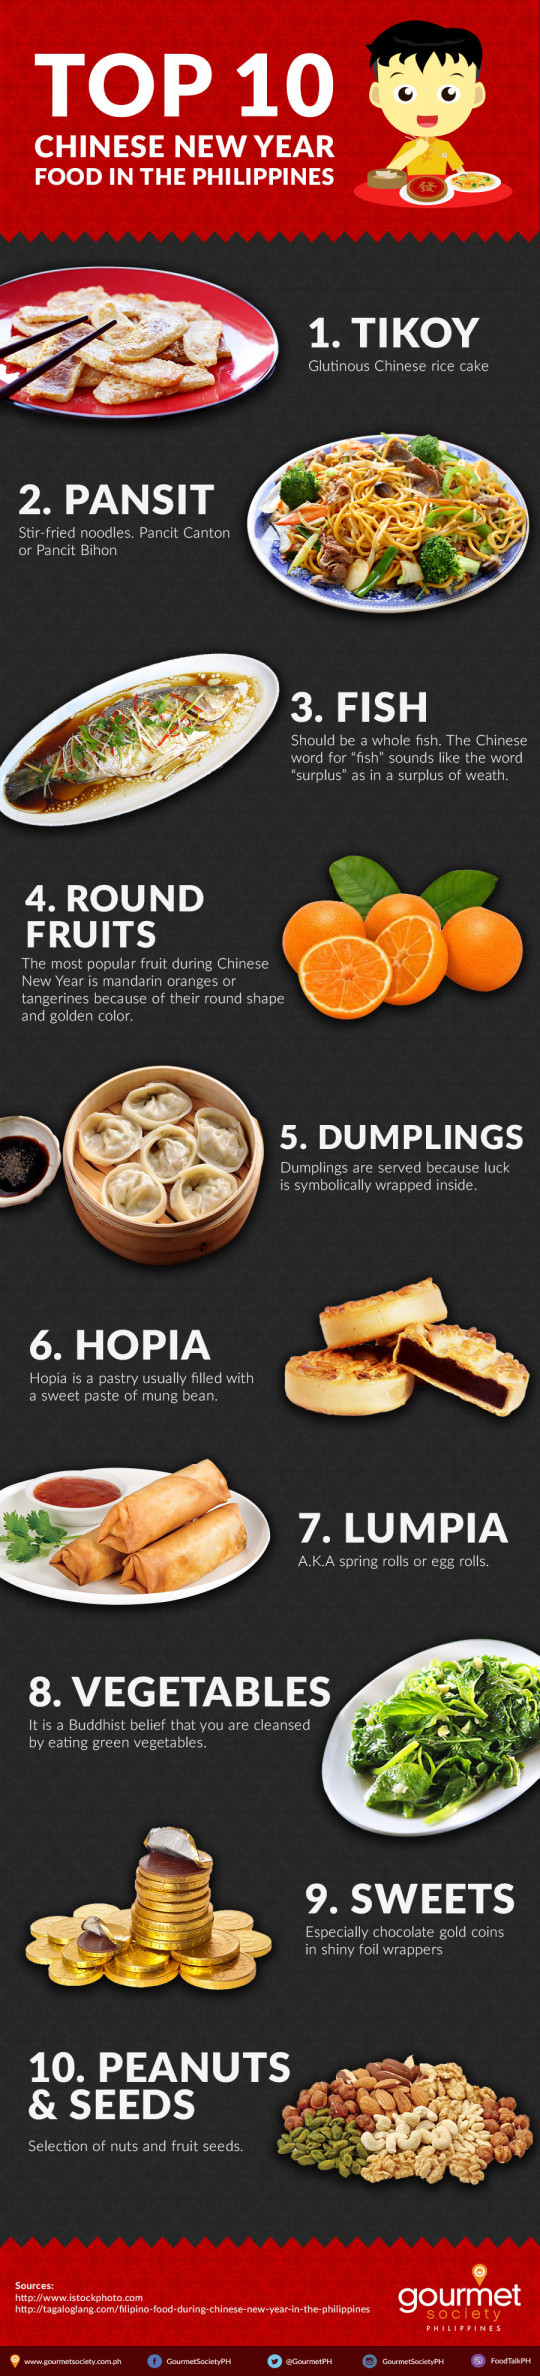 Top 10 Popular Chinese New Year Food in the Philippines